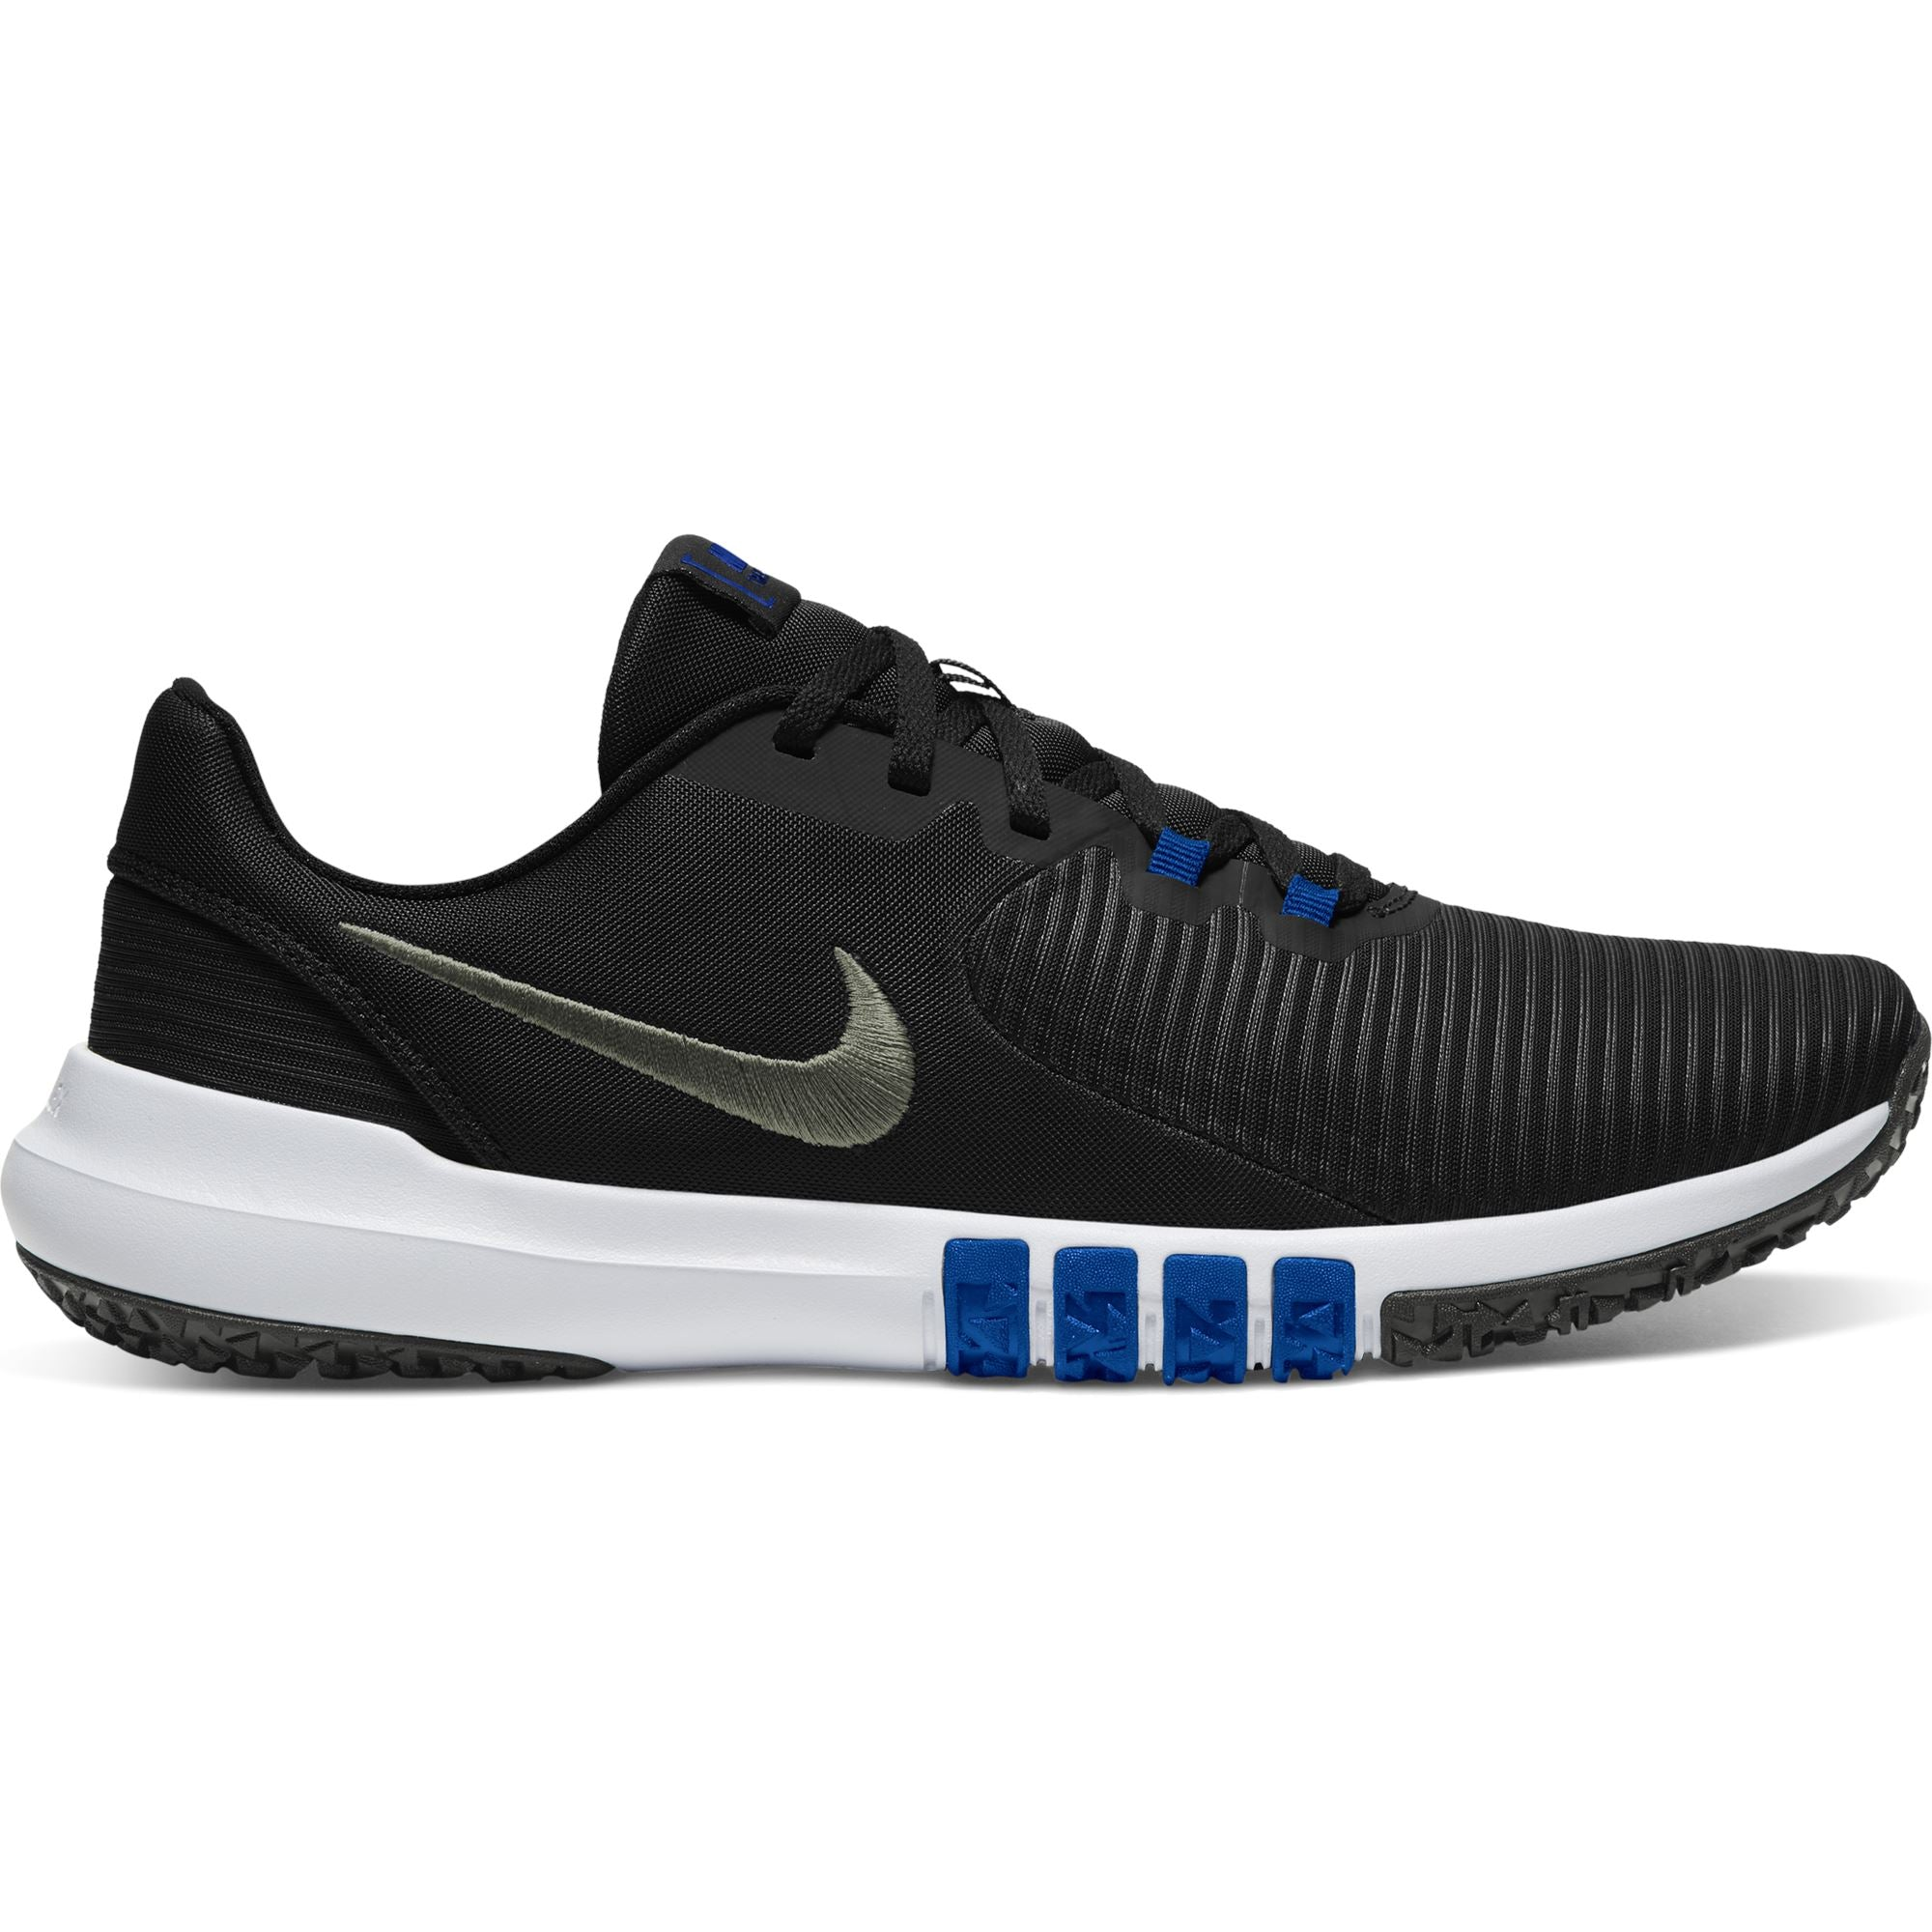 Nike Mens Training Flex Control 4 - Black/Twilight Marsh/Newsprint SP-Footwear-Mens Nike